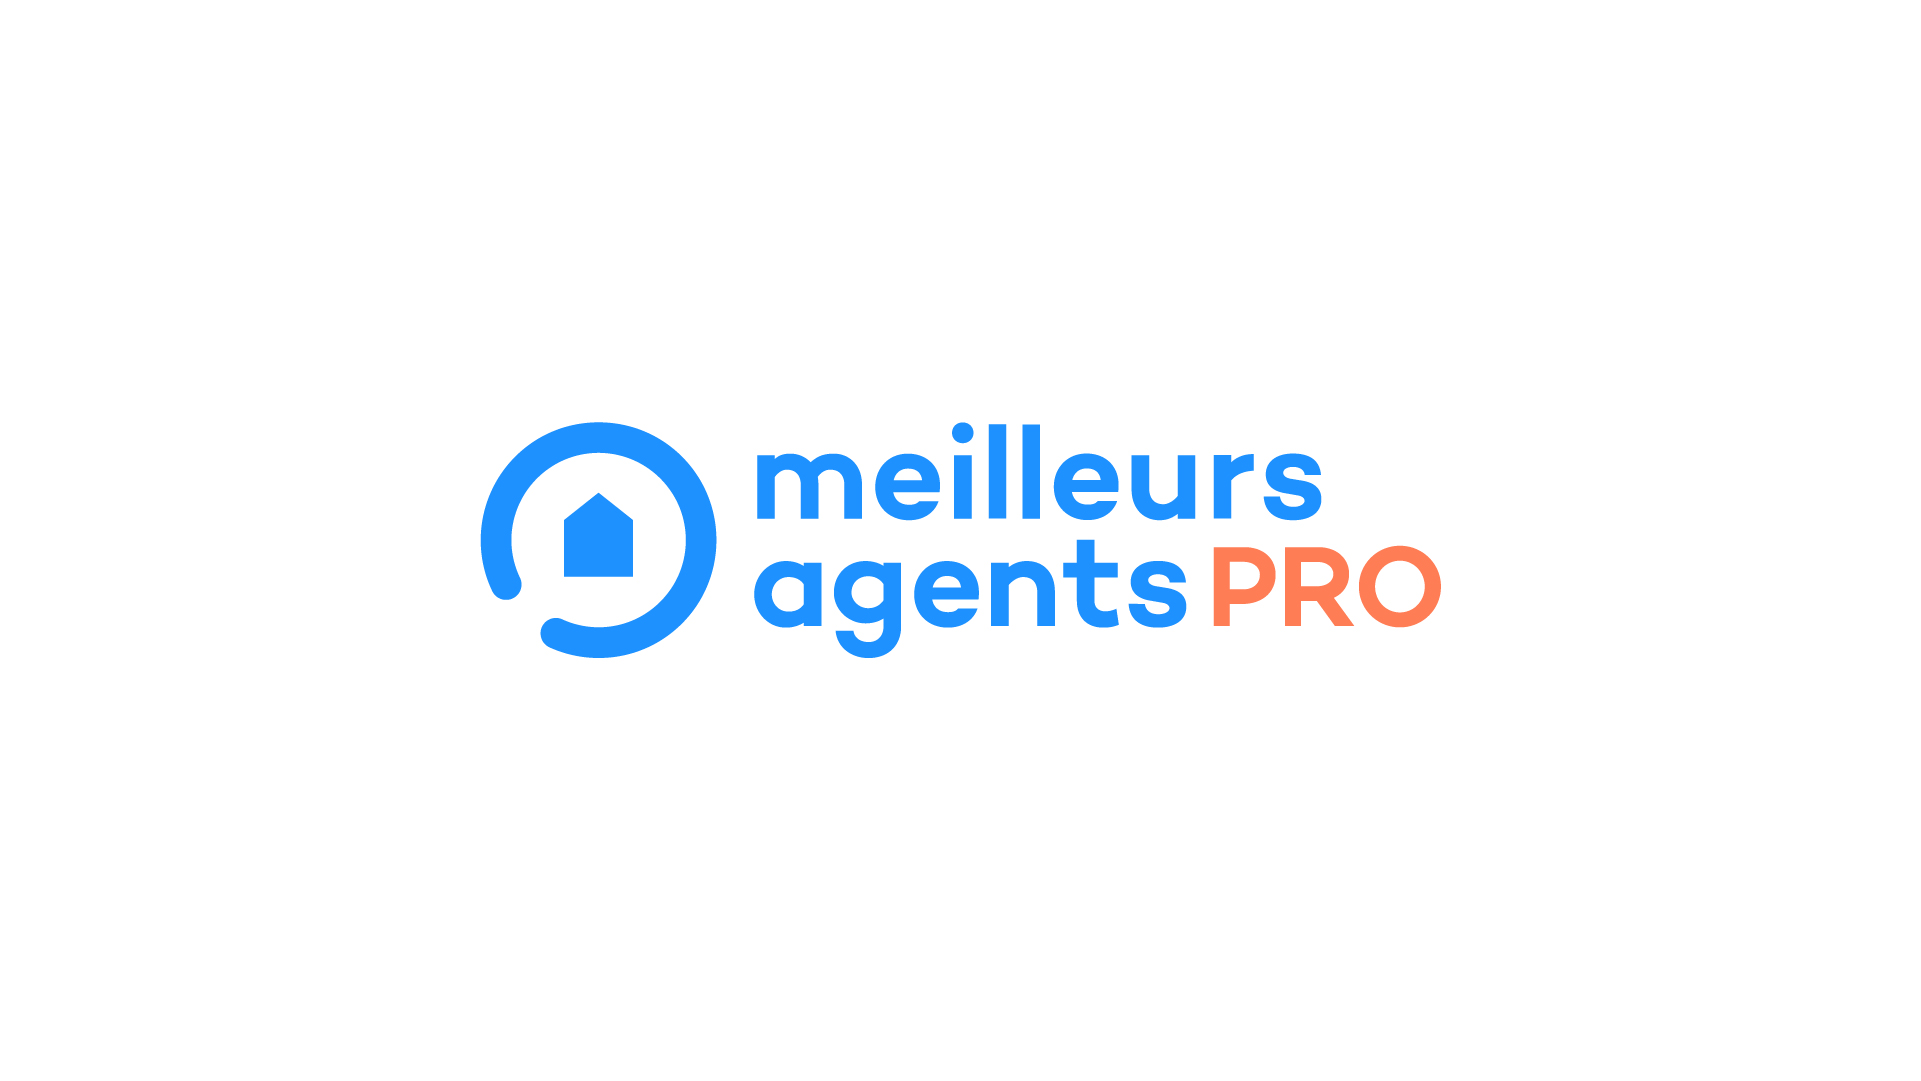 Version du logotype Meilleurs Agents PRO